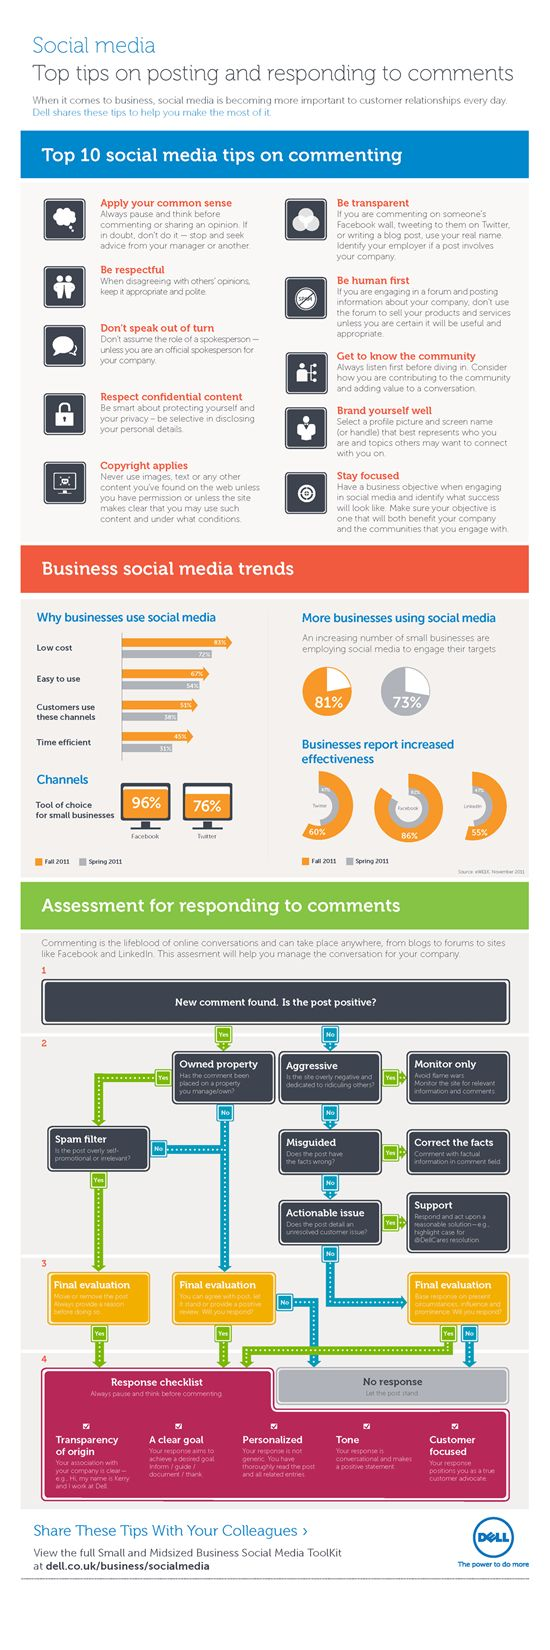 10 social media tips when commenting and responding to customers online.    Take a look at almost any survey about social media and how businesses use it, there's one clear constant – not only is business use increasing, but also the need for helping business employees  understand how to use social media is increasing. Rewards for doing this well and risks if mistakes are made, are very real.